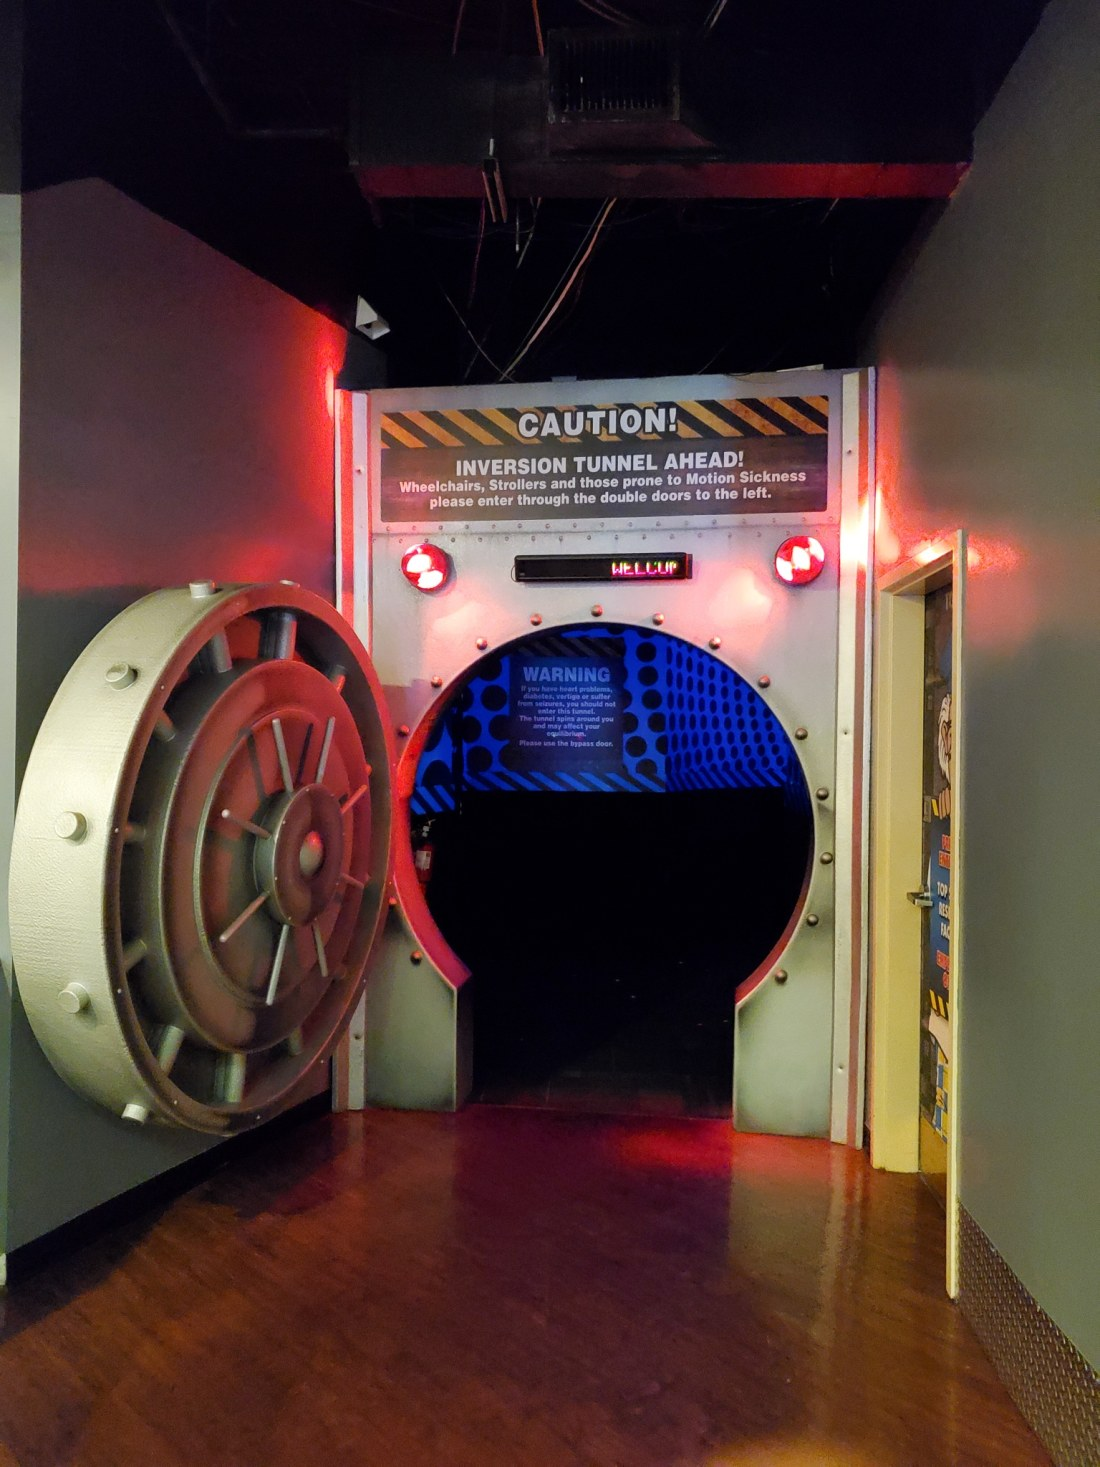 """WonderWorks Vault Entrance. One of the topthings to do in Pigeon Forge, WonderWorks Indoor Amusement park, is one of the bestPigeon Forge Attractions. With over 35,000 square feet of """"edu-tainment,"""" WonderWorks is an amusement park for the mind. Read our full review on the blog."""